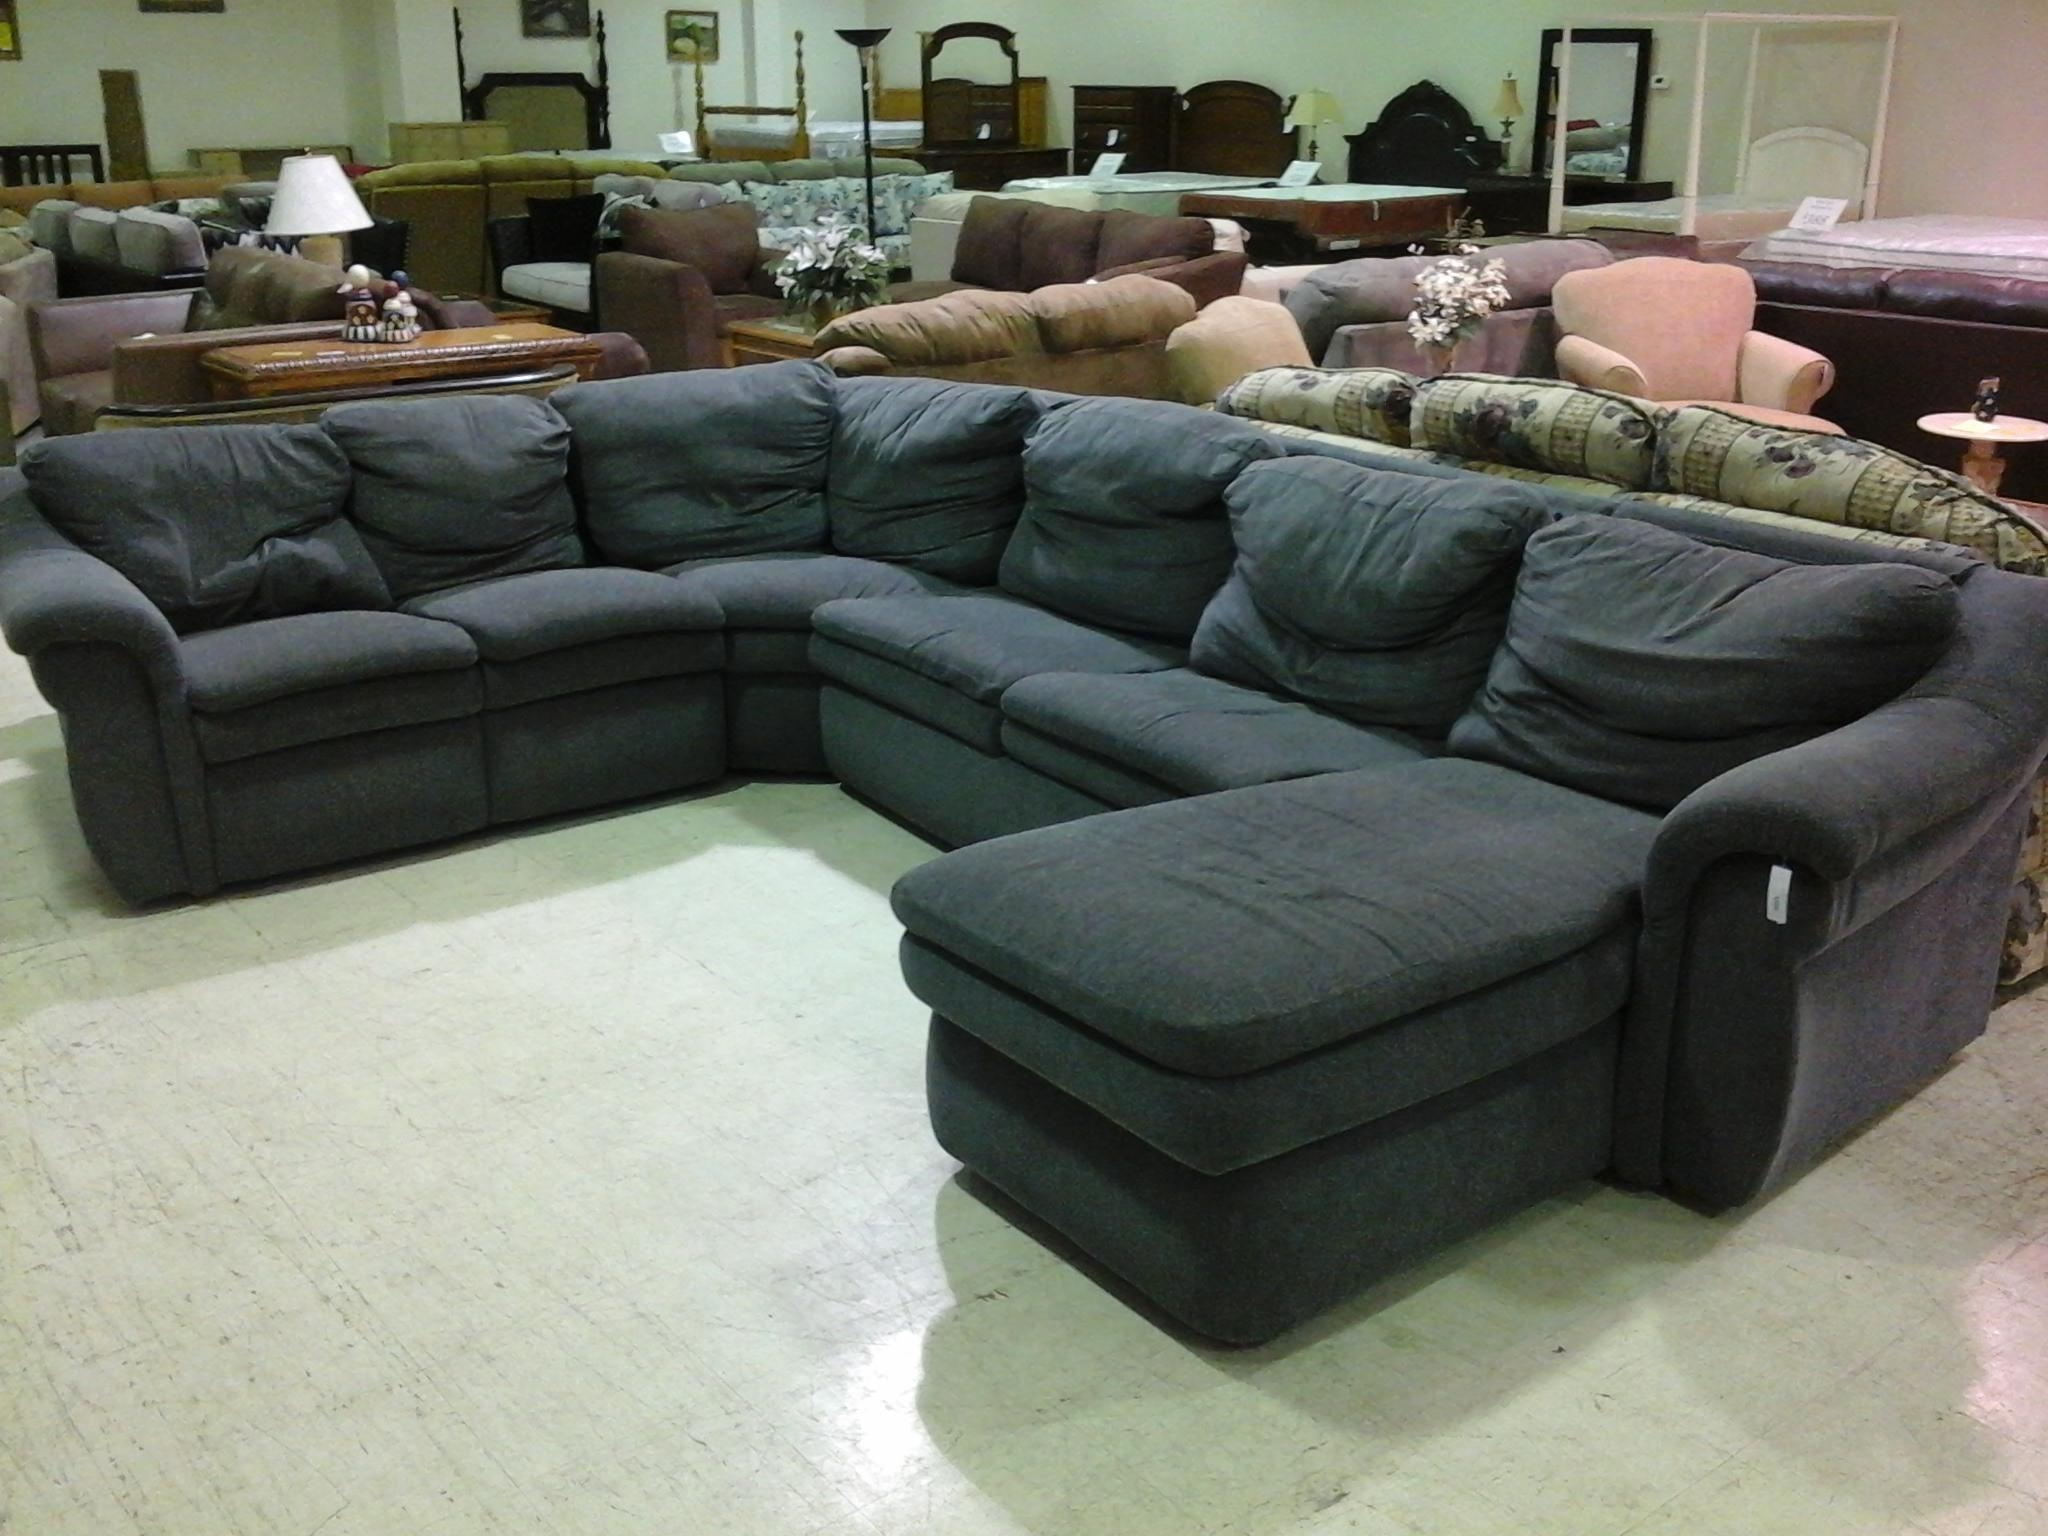 Furniture: Sofa Beds With Chaise And Sectional With Sleeper For Sectional Sofas With Sleeper And Chaise (Image 8 of 21)